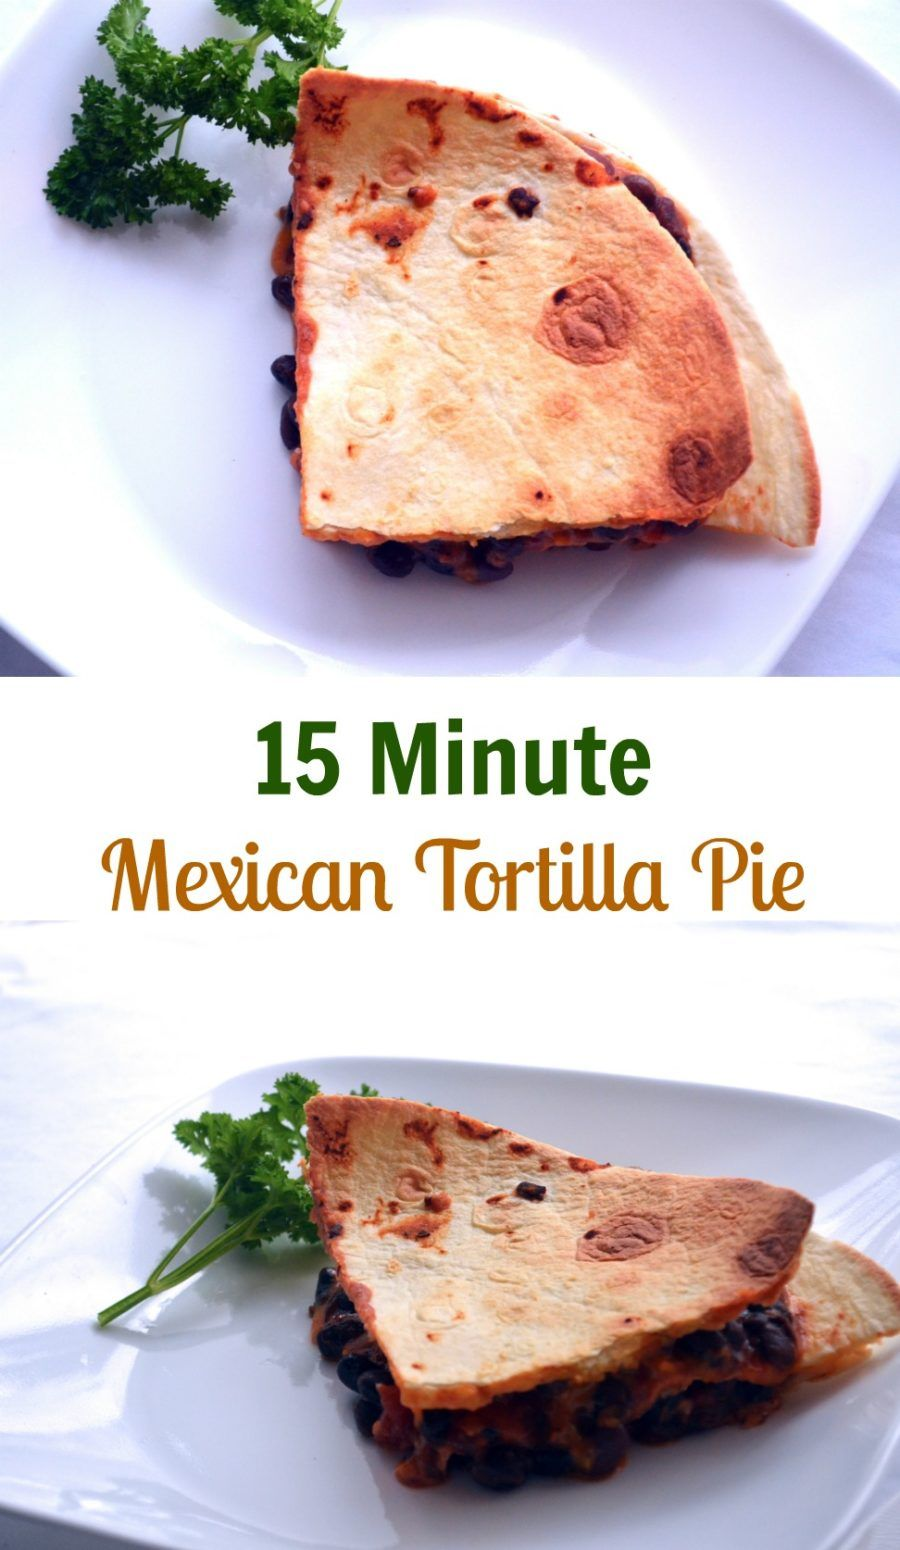 15 min tortilla pie recettes pinterest tortilla pie pies and food food forumfinder Image collections